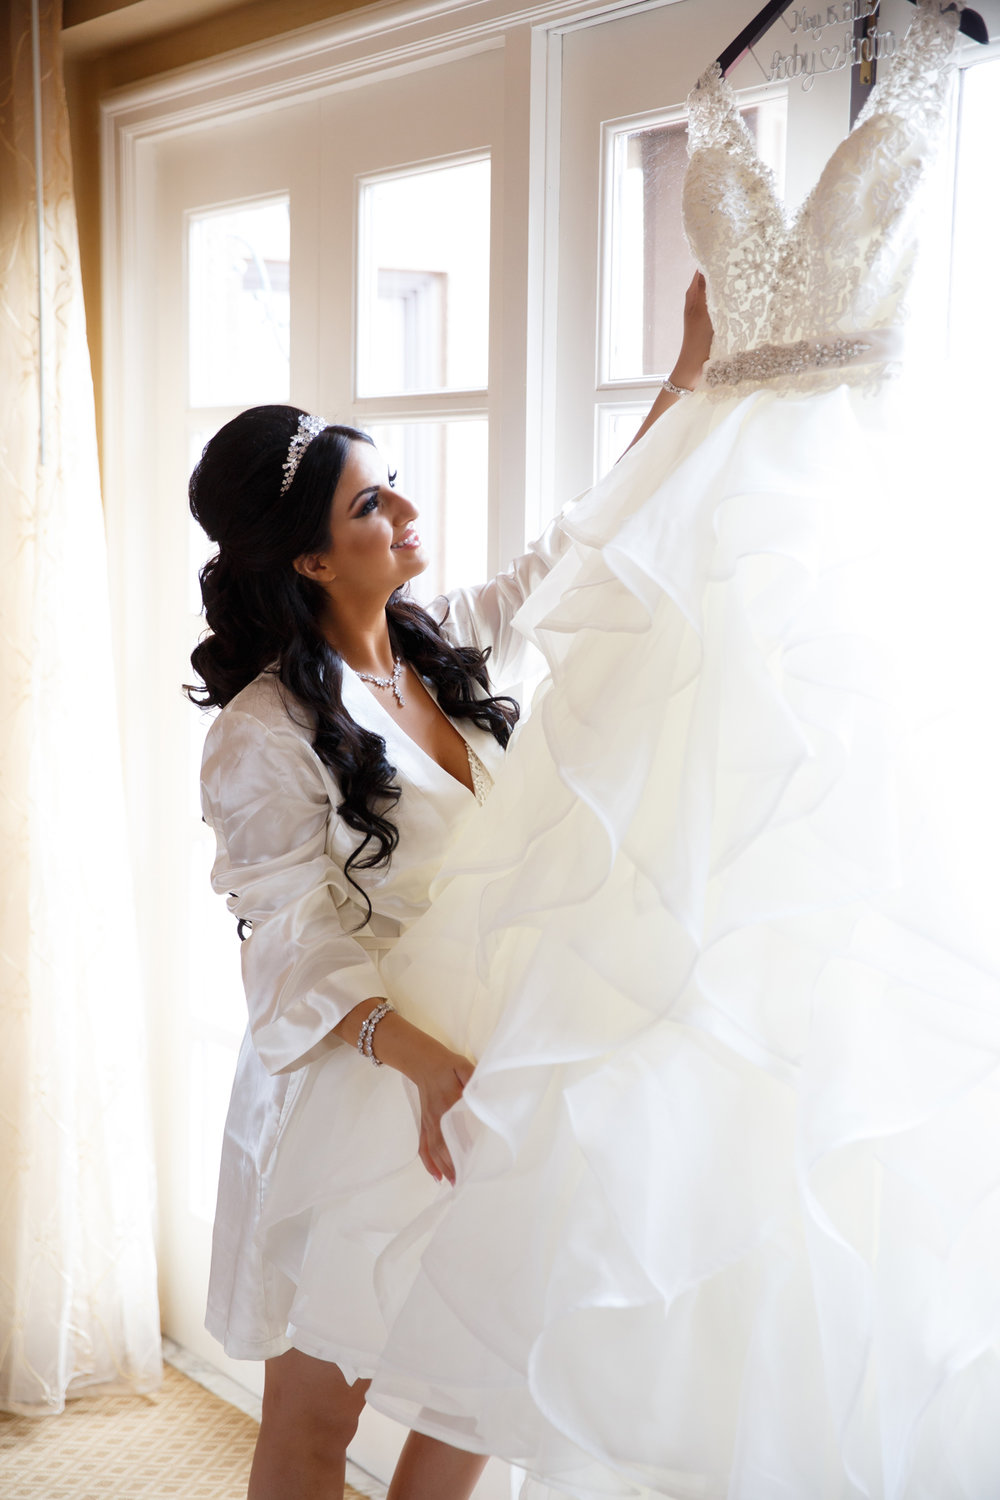 Elegant Pasadena Wedding to Make You Swoon bride admiring her gown.jpg